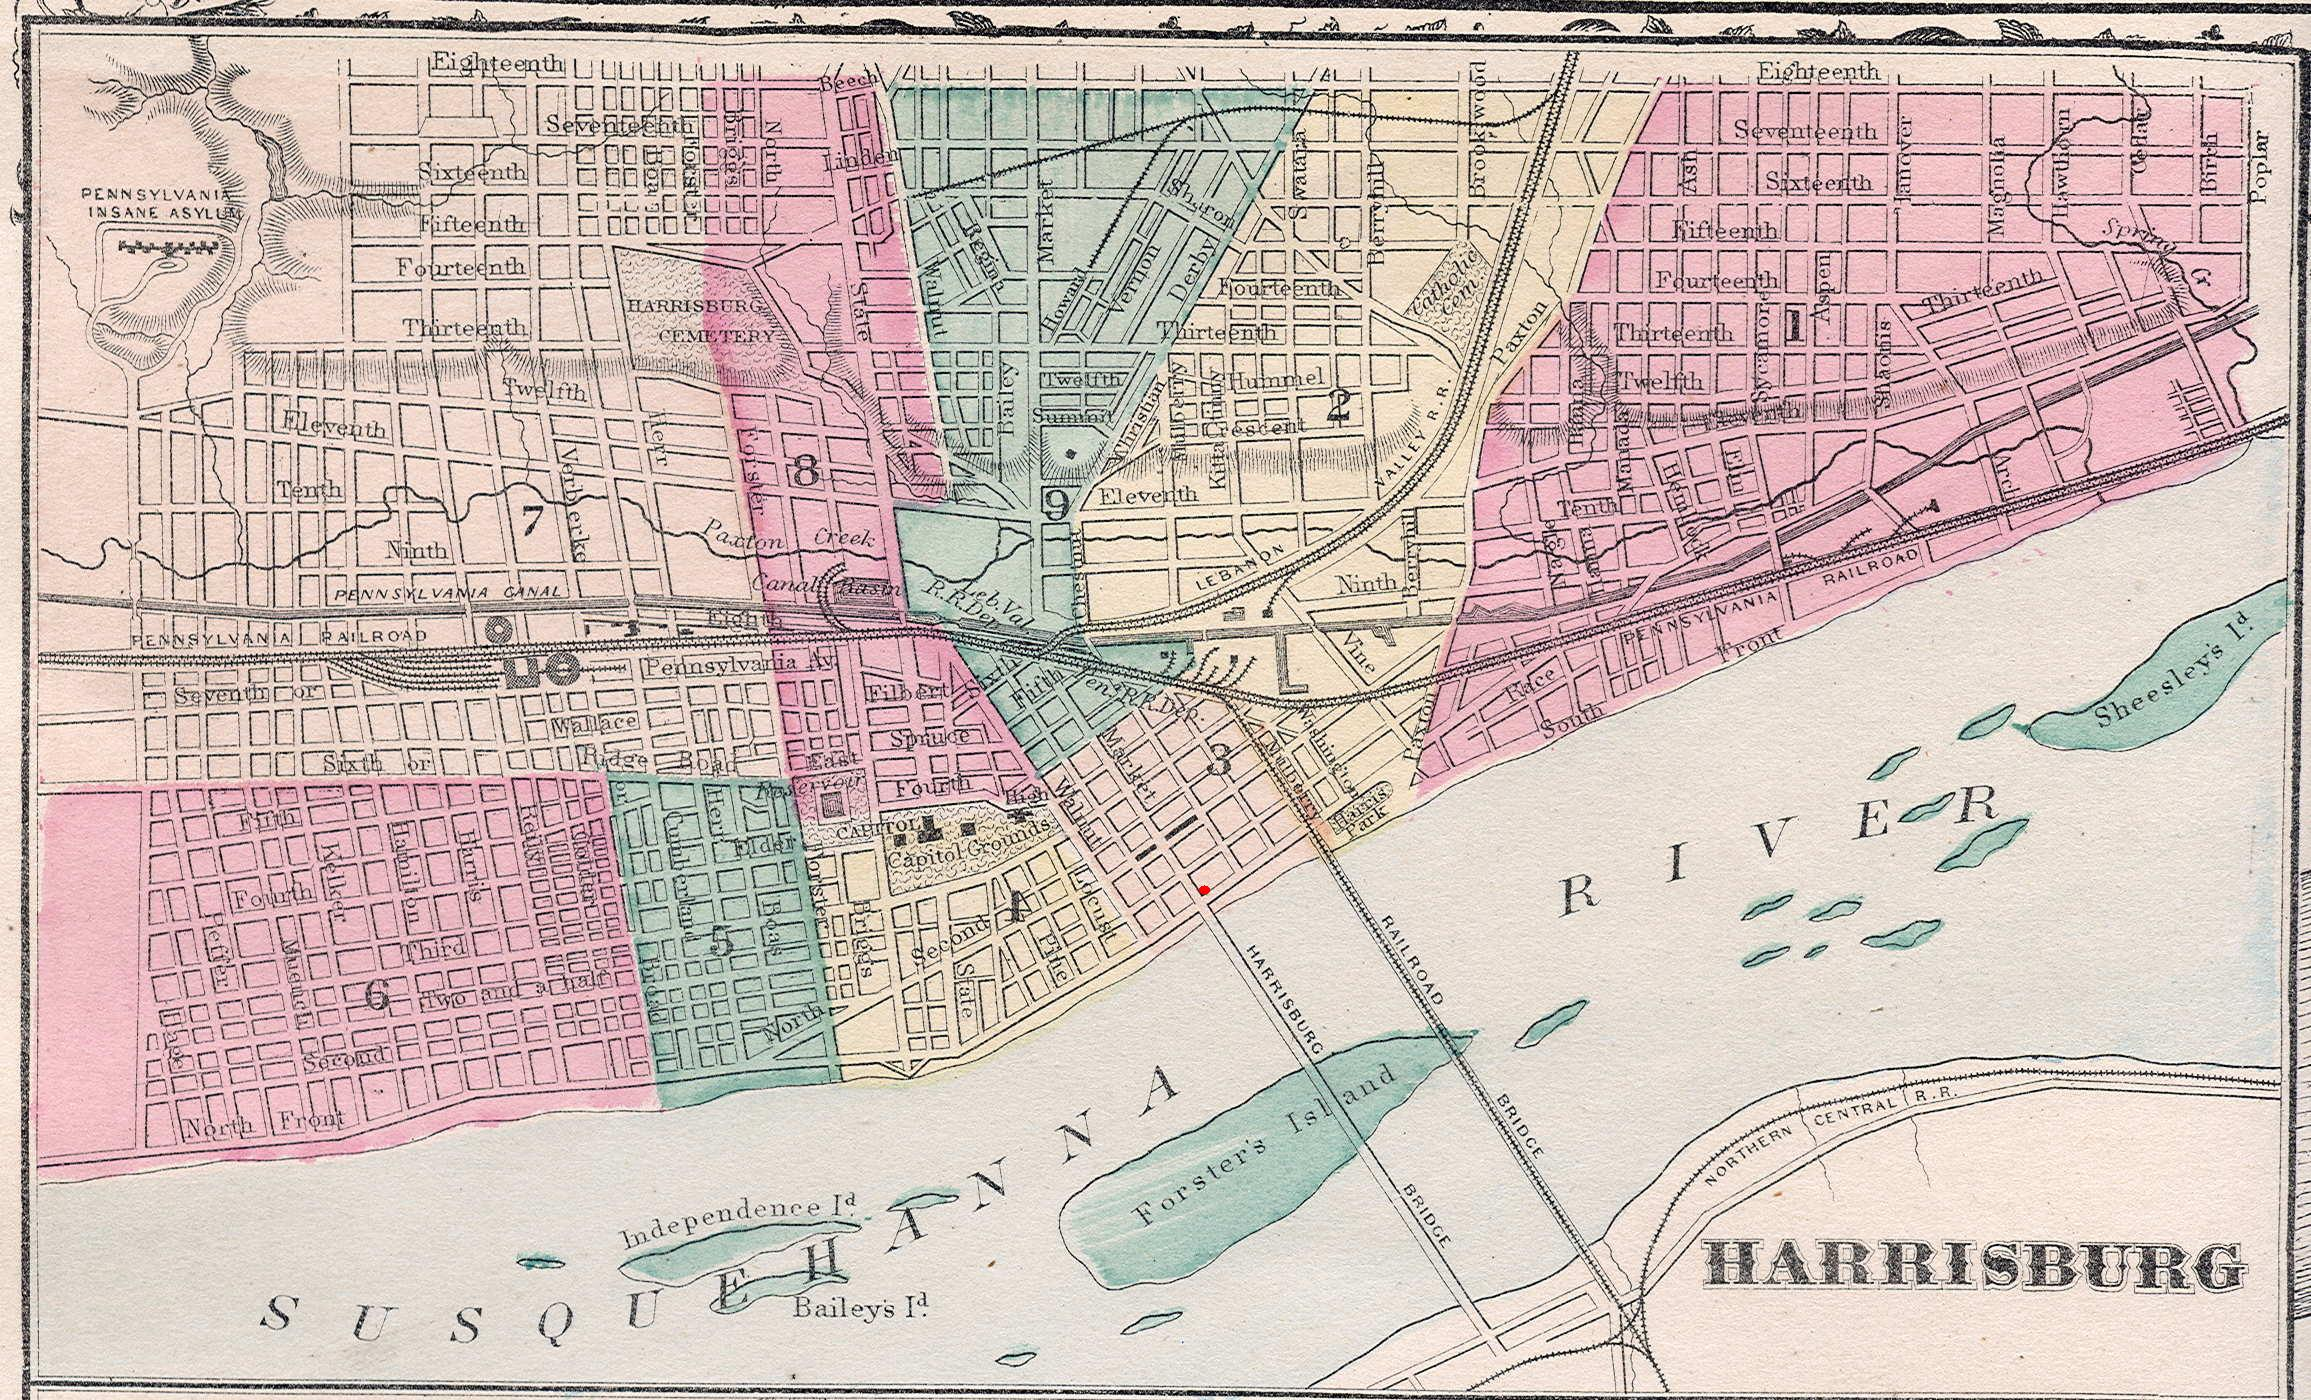 lancaster county maps with Harrisburg And The 1900 Census on Harrisburg And The 1900 Census likewise Lancaster County Marker Z 3 together with Historical County Maps Of Pennsylvania furthermore Pennsylvania Zip Codes Map Free also Article 96e7d515 Bff6 5841 Ae36 20d3e6737f5c.